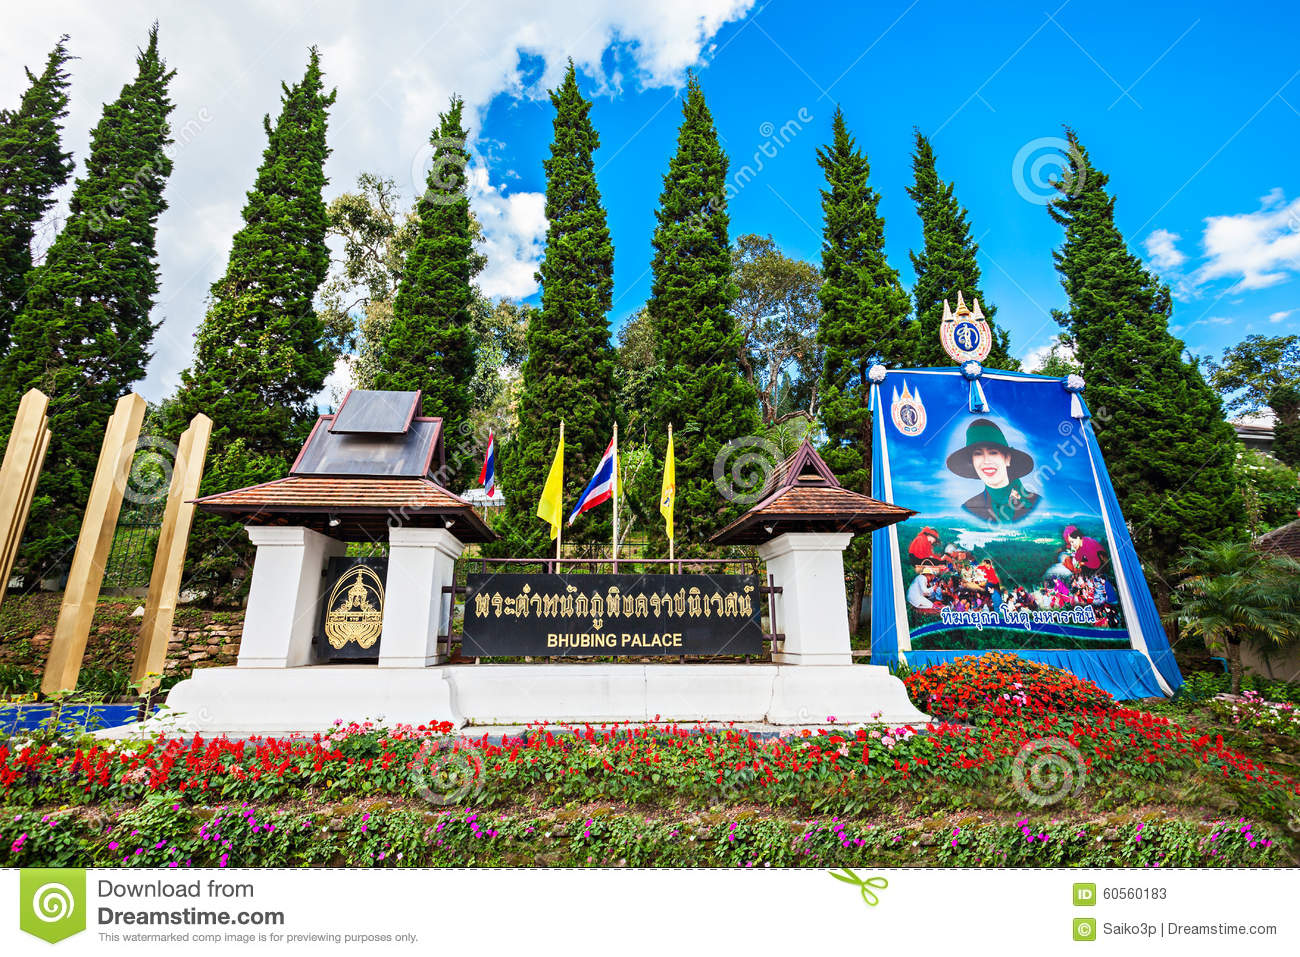 Bhubing Rajanives Palace Editorial Stock Photo - Image: 60560183